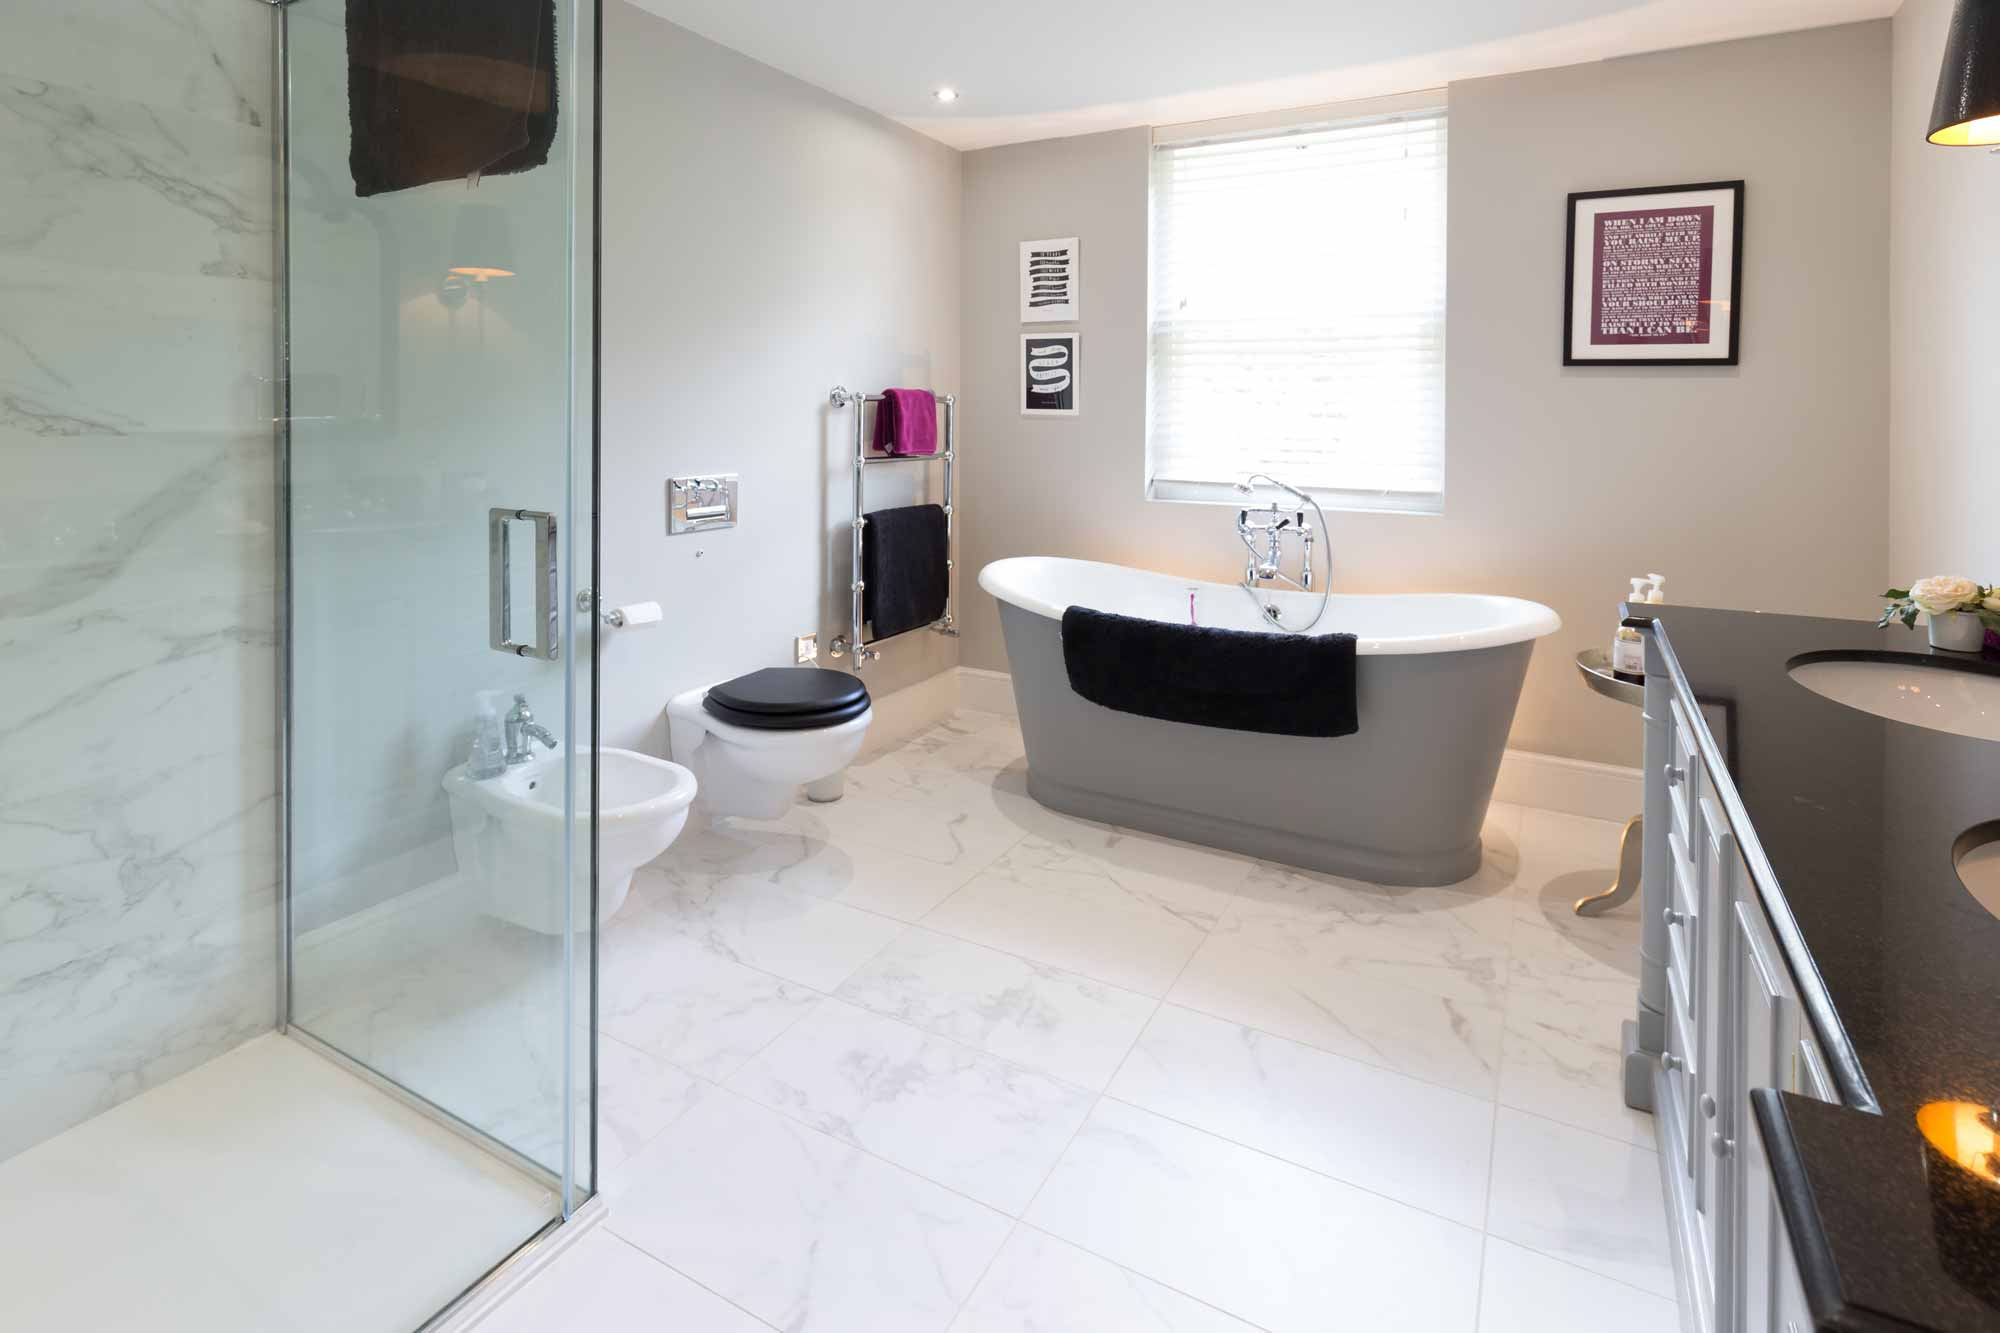 role top bath, his and hers sink, vanity unit, wall hung WC and bidet, glass shower